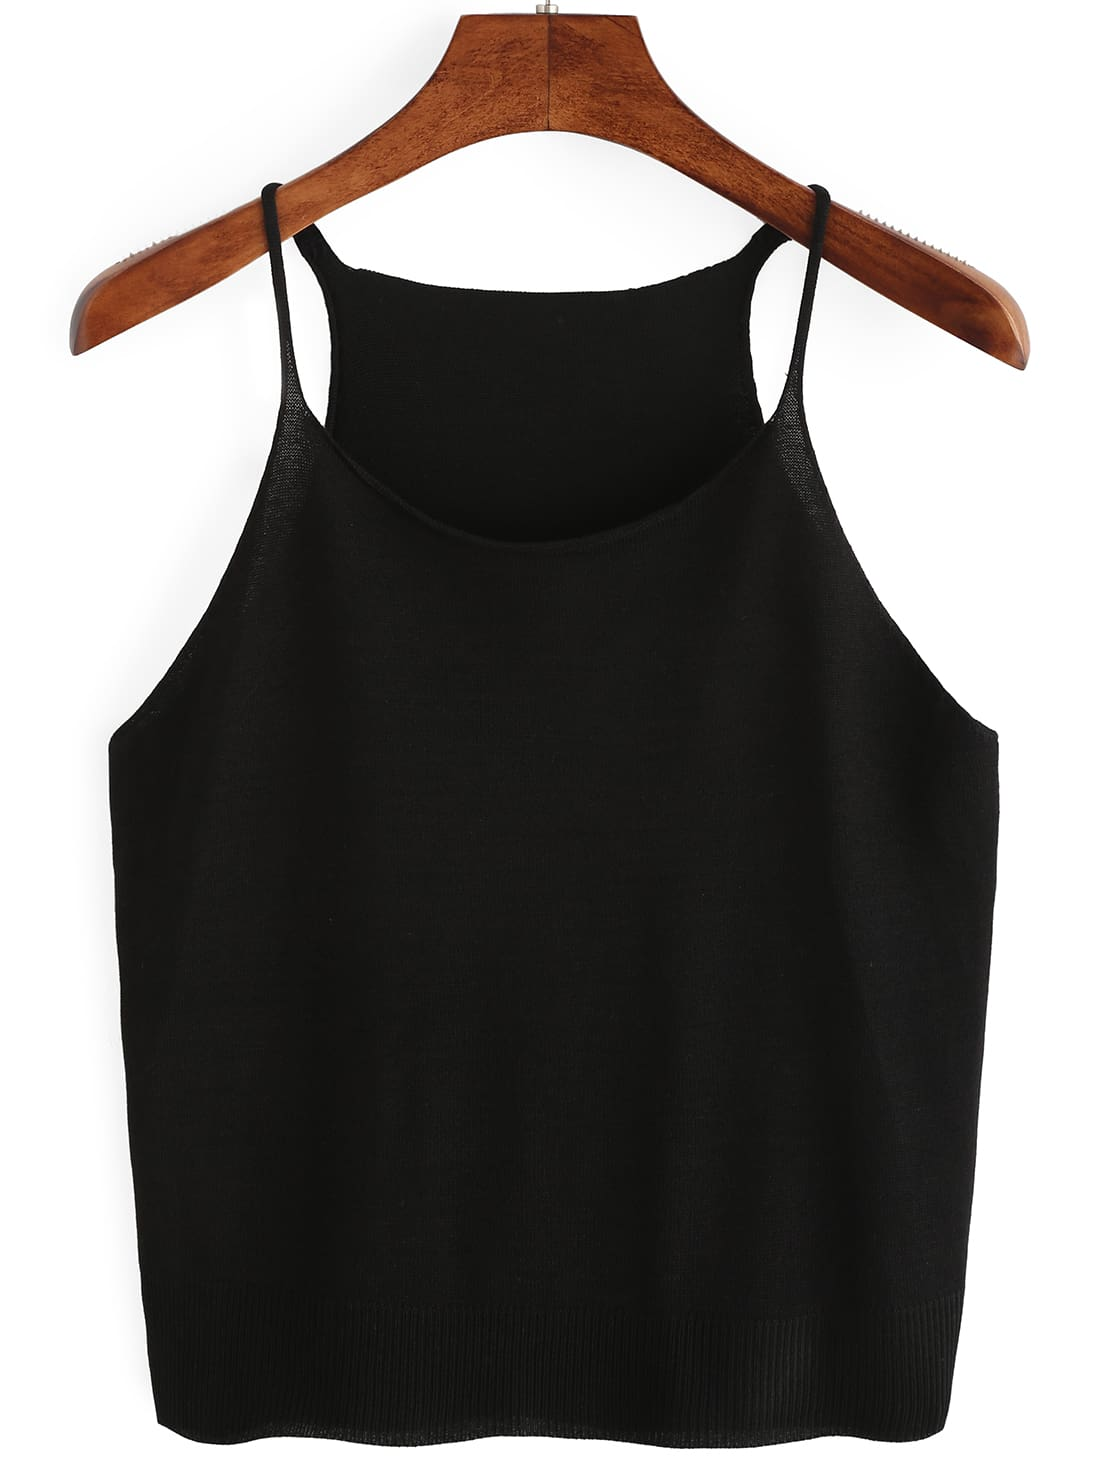 Black Knitted Cami TopBlack Knitted Cami Top<br><br>color: Black<br>size: one-size